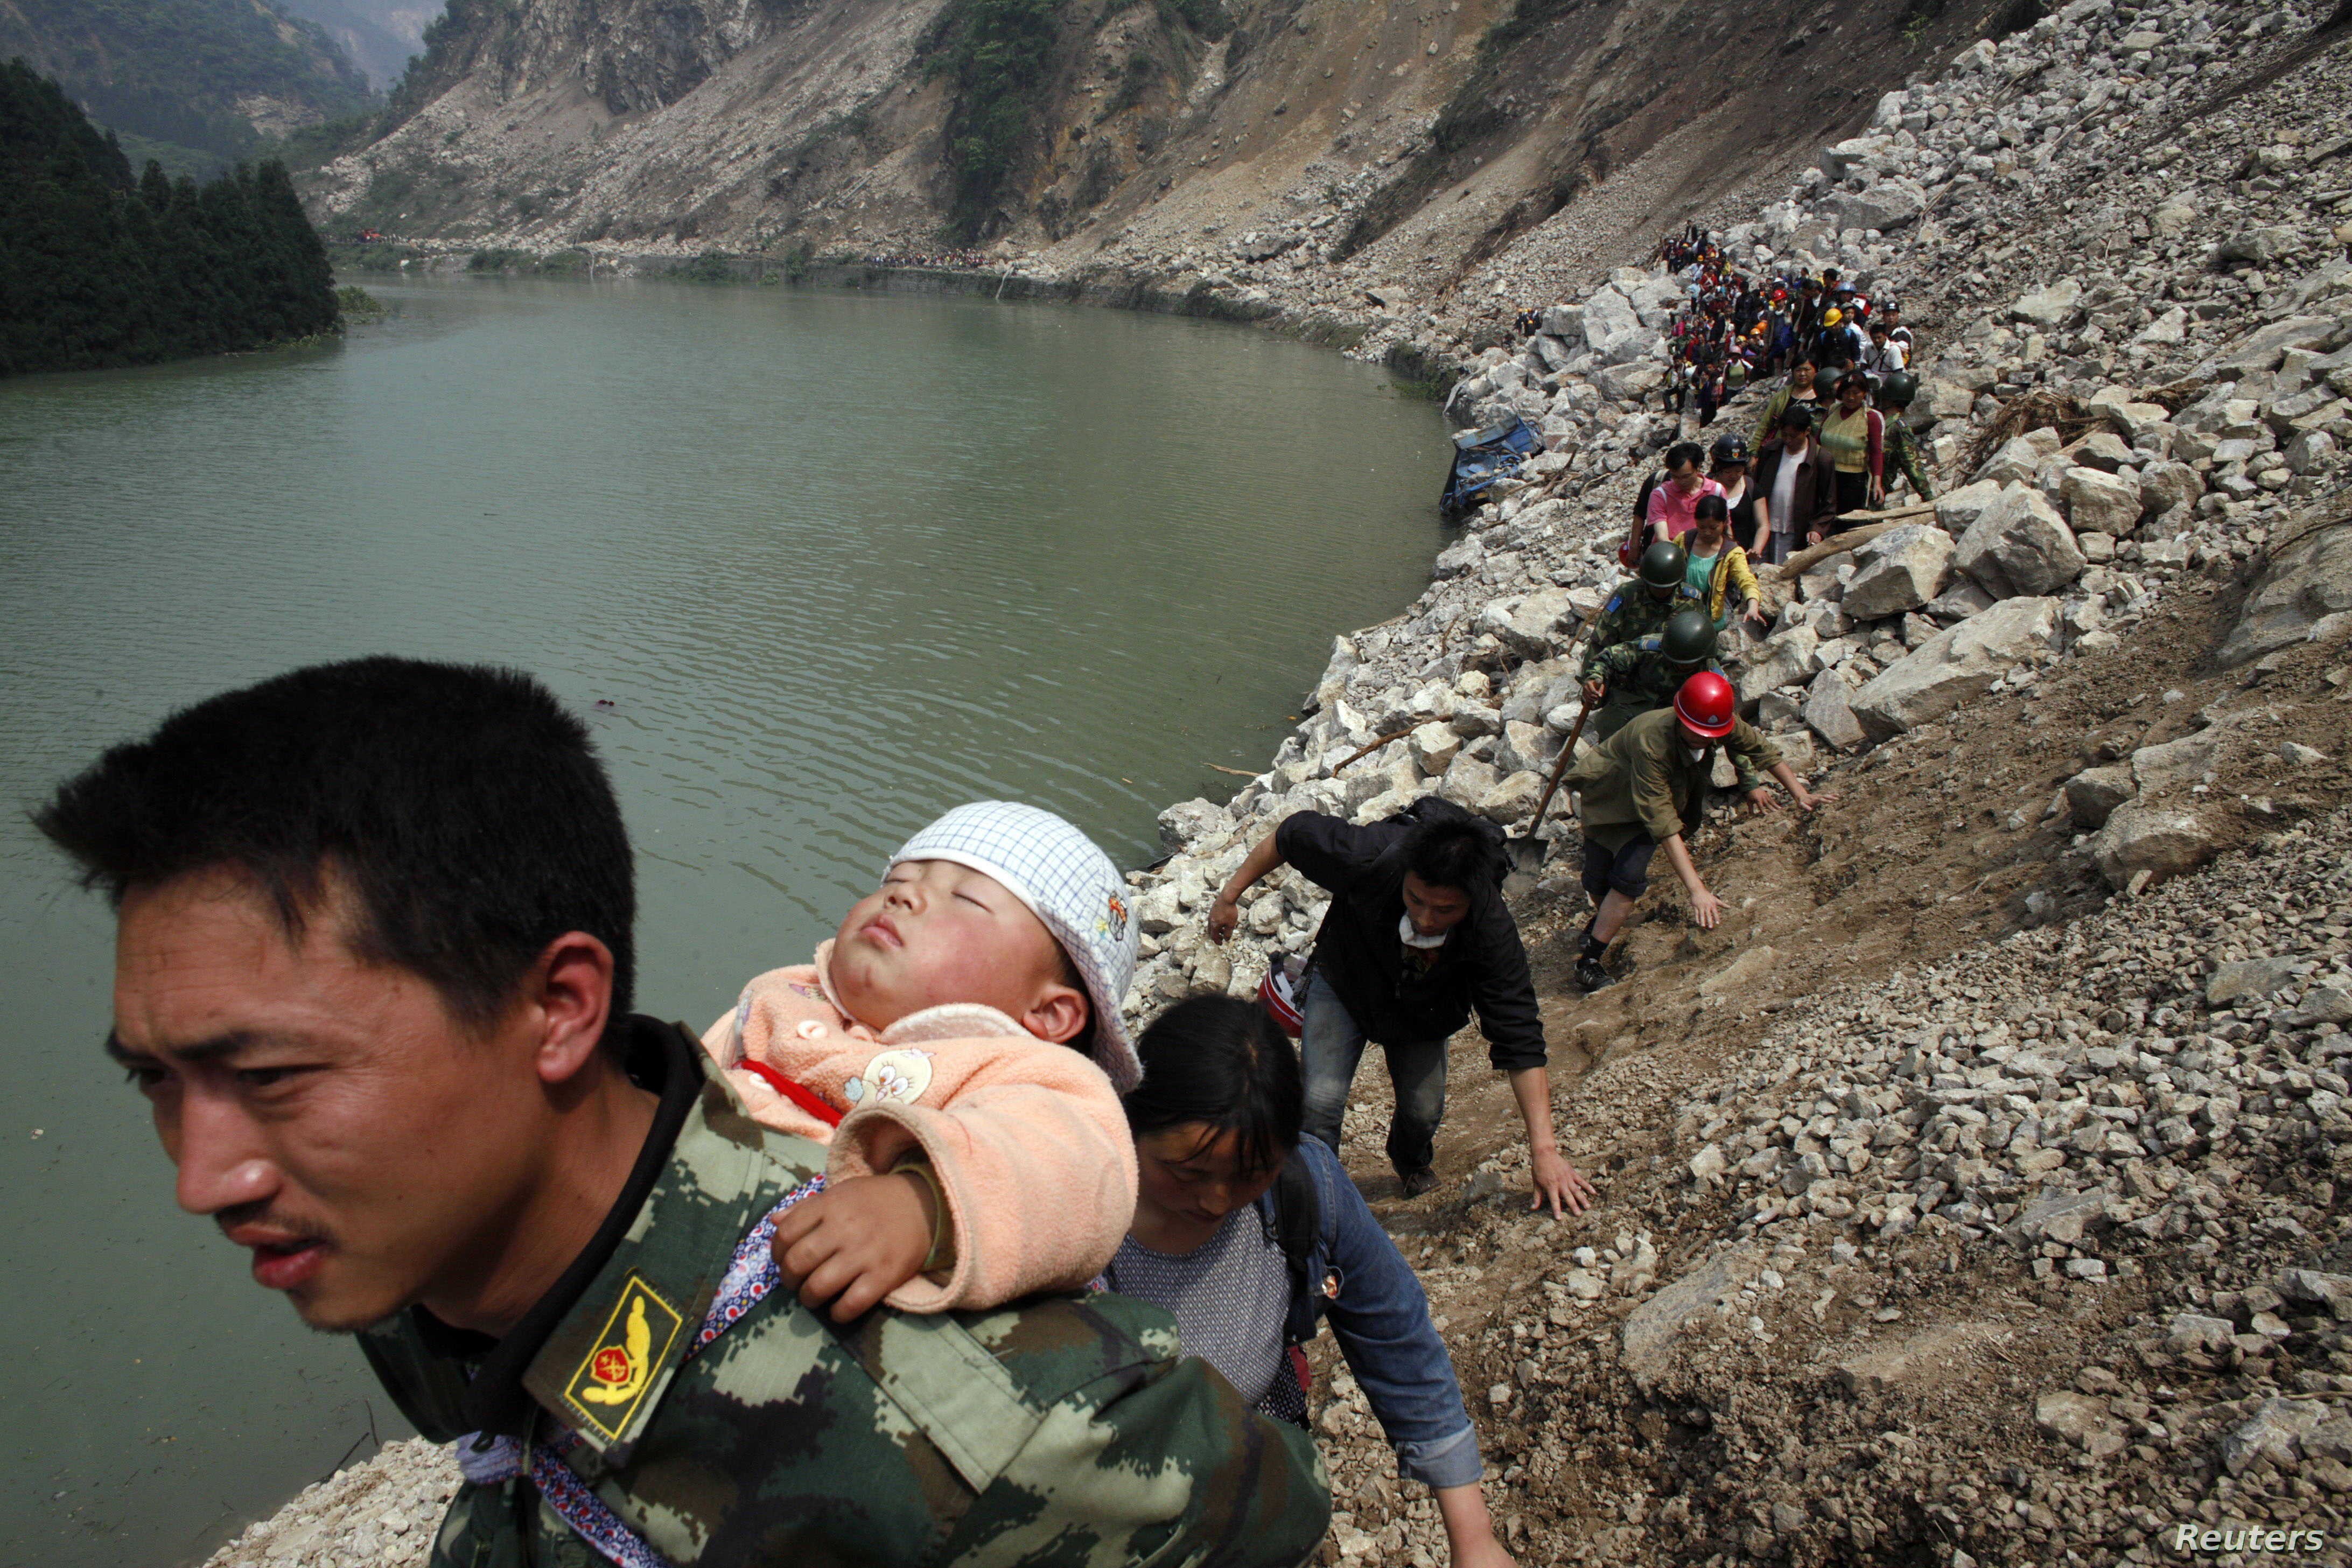 FILE - Survivor carries baby on his back as he and some 1,000 other survivors make a  9-hour walk from the village of Qingping to Hanwang, after earthquake, Sichuan Province, China, May 16, 2008.